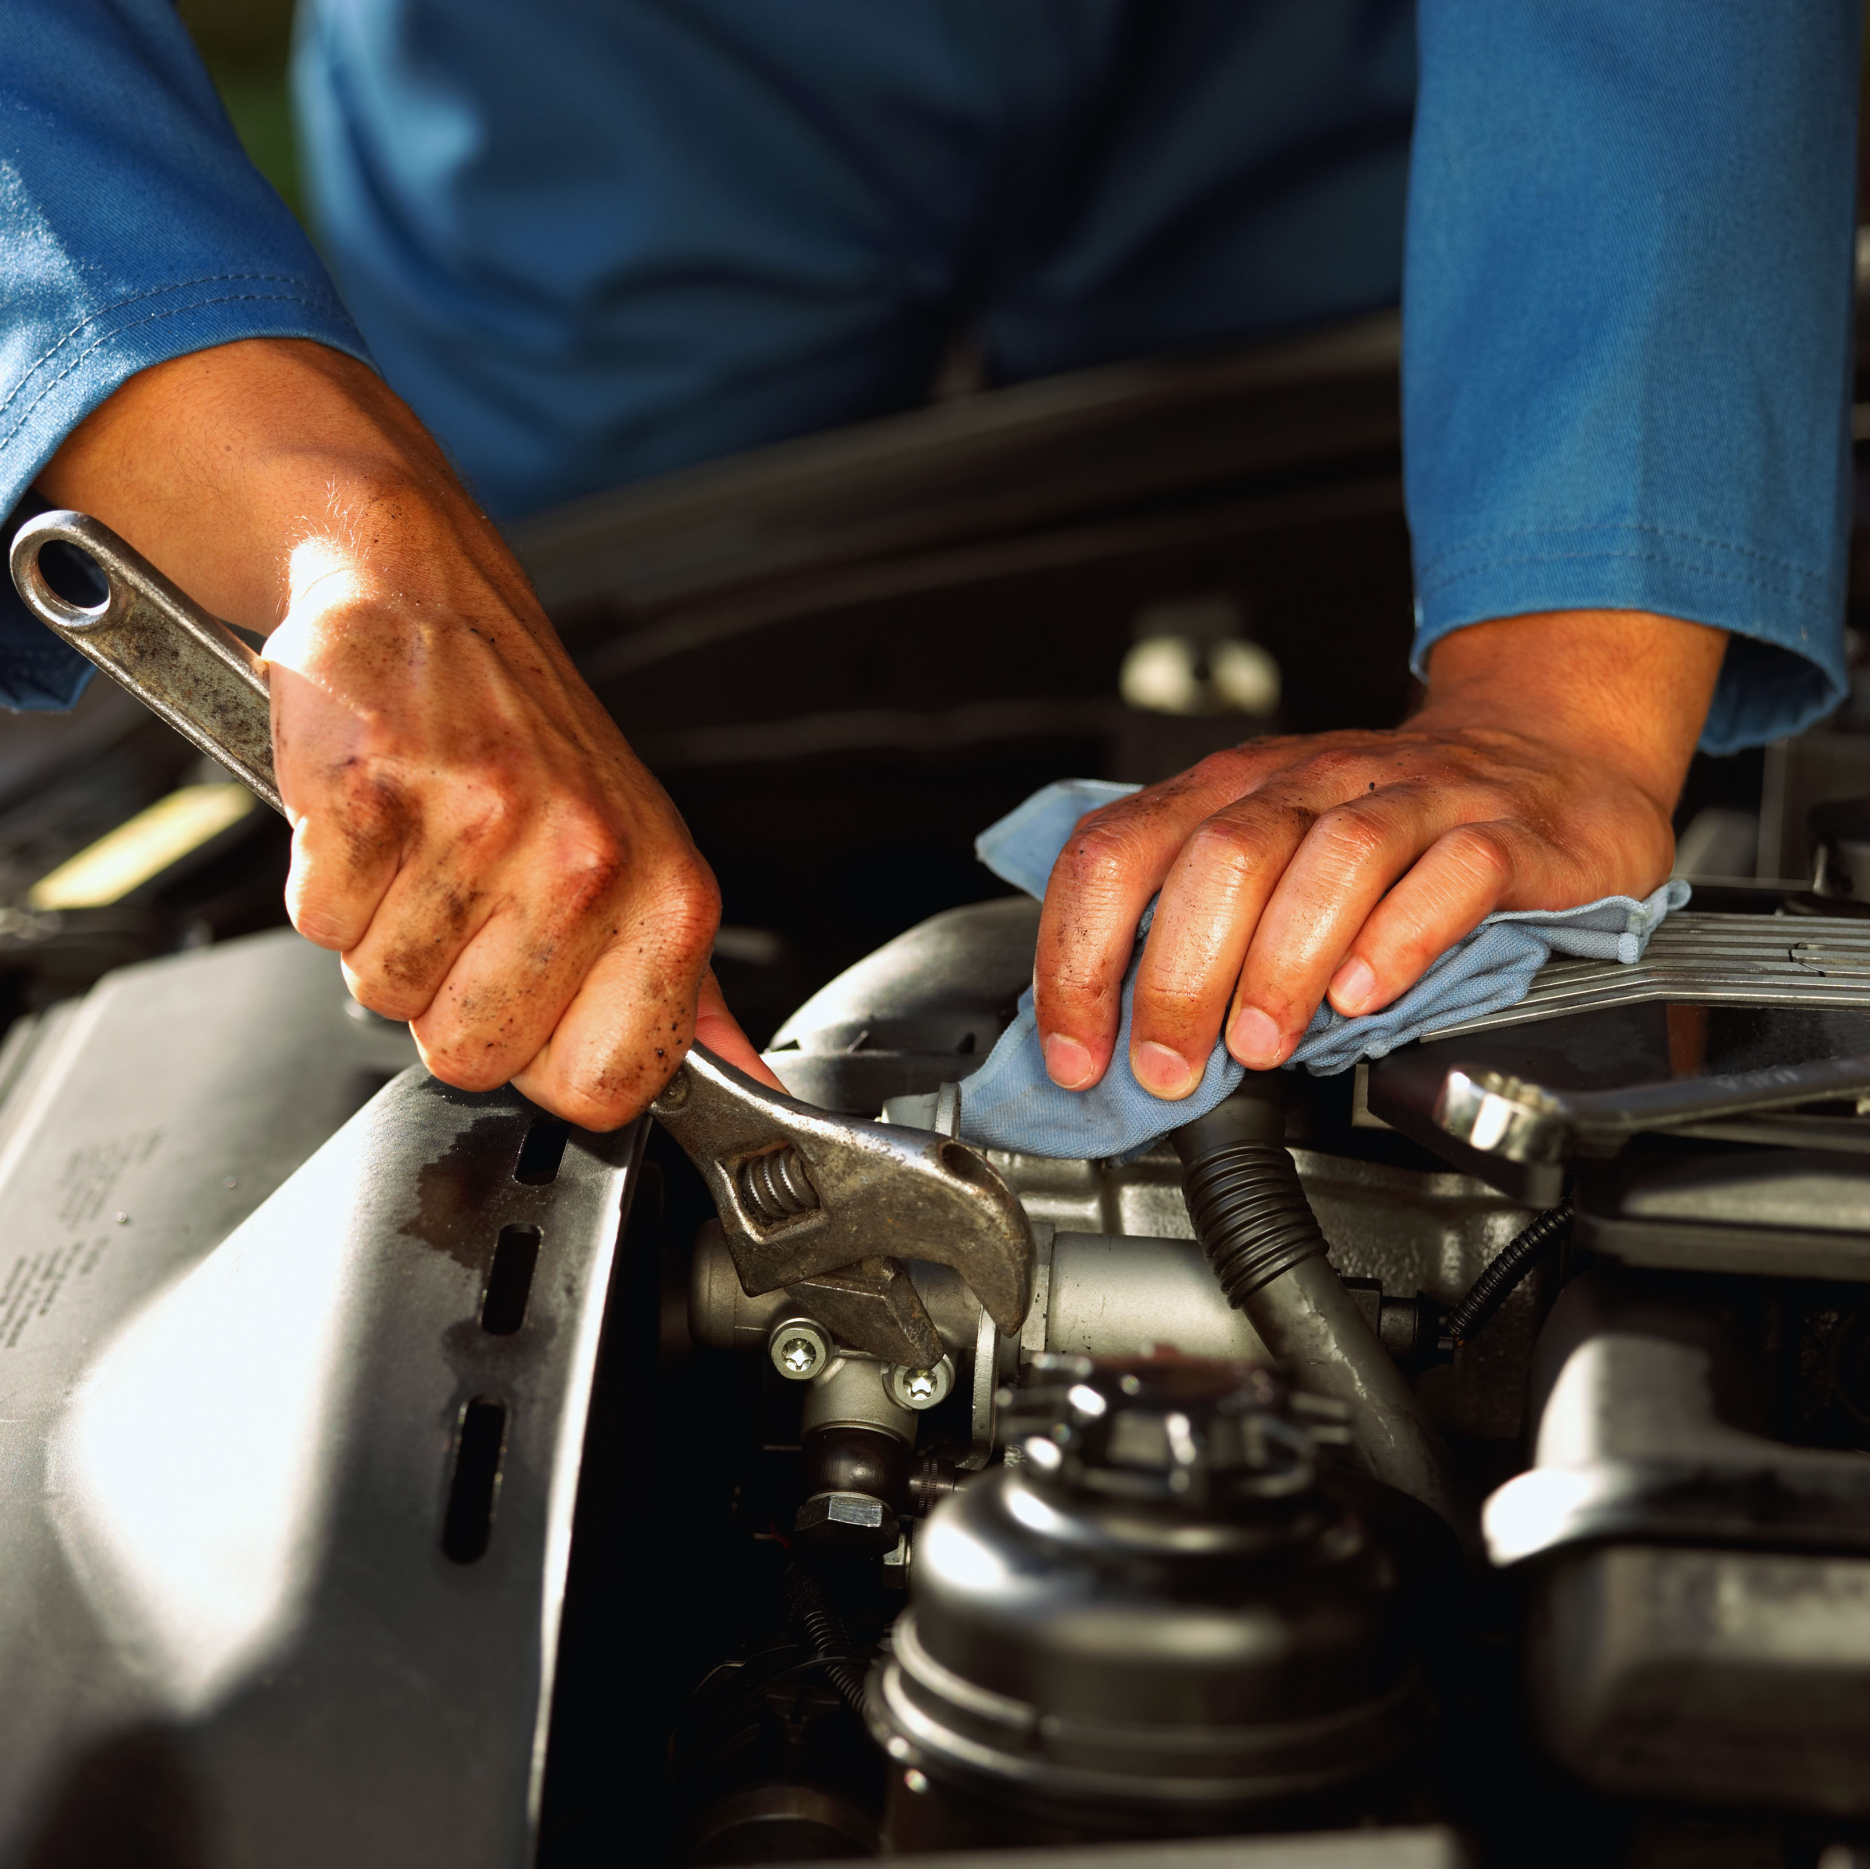 Minor car repairs diy or hire a mechanic auto service for Mercedes benz oil change jiffy lube